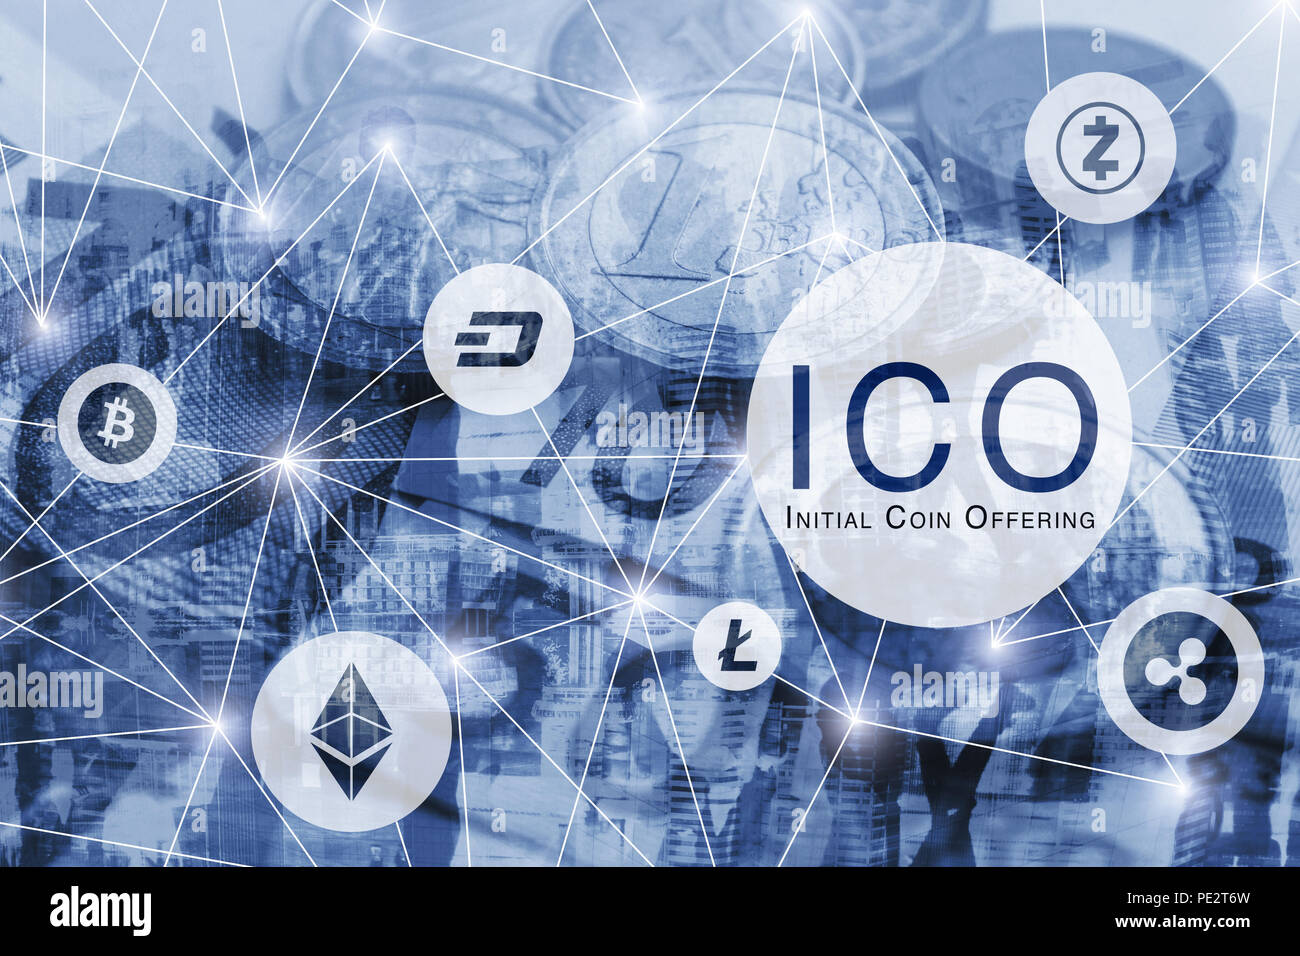 ICO concept, initial coin offering, digital money crypto currency bitcoin, litecoin, ethereum, dash, ripple - Stock Image